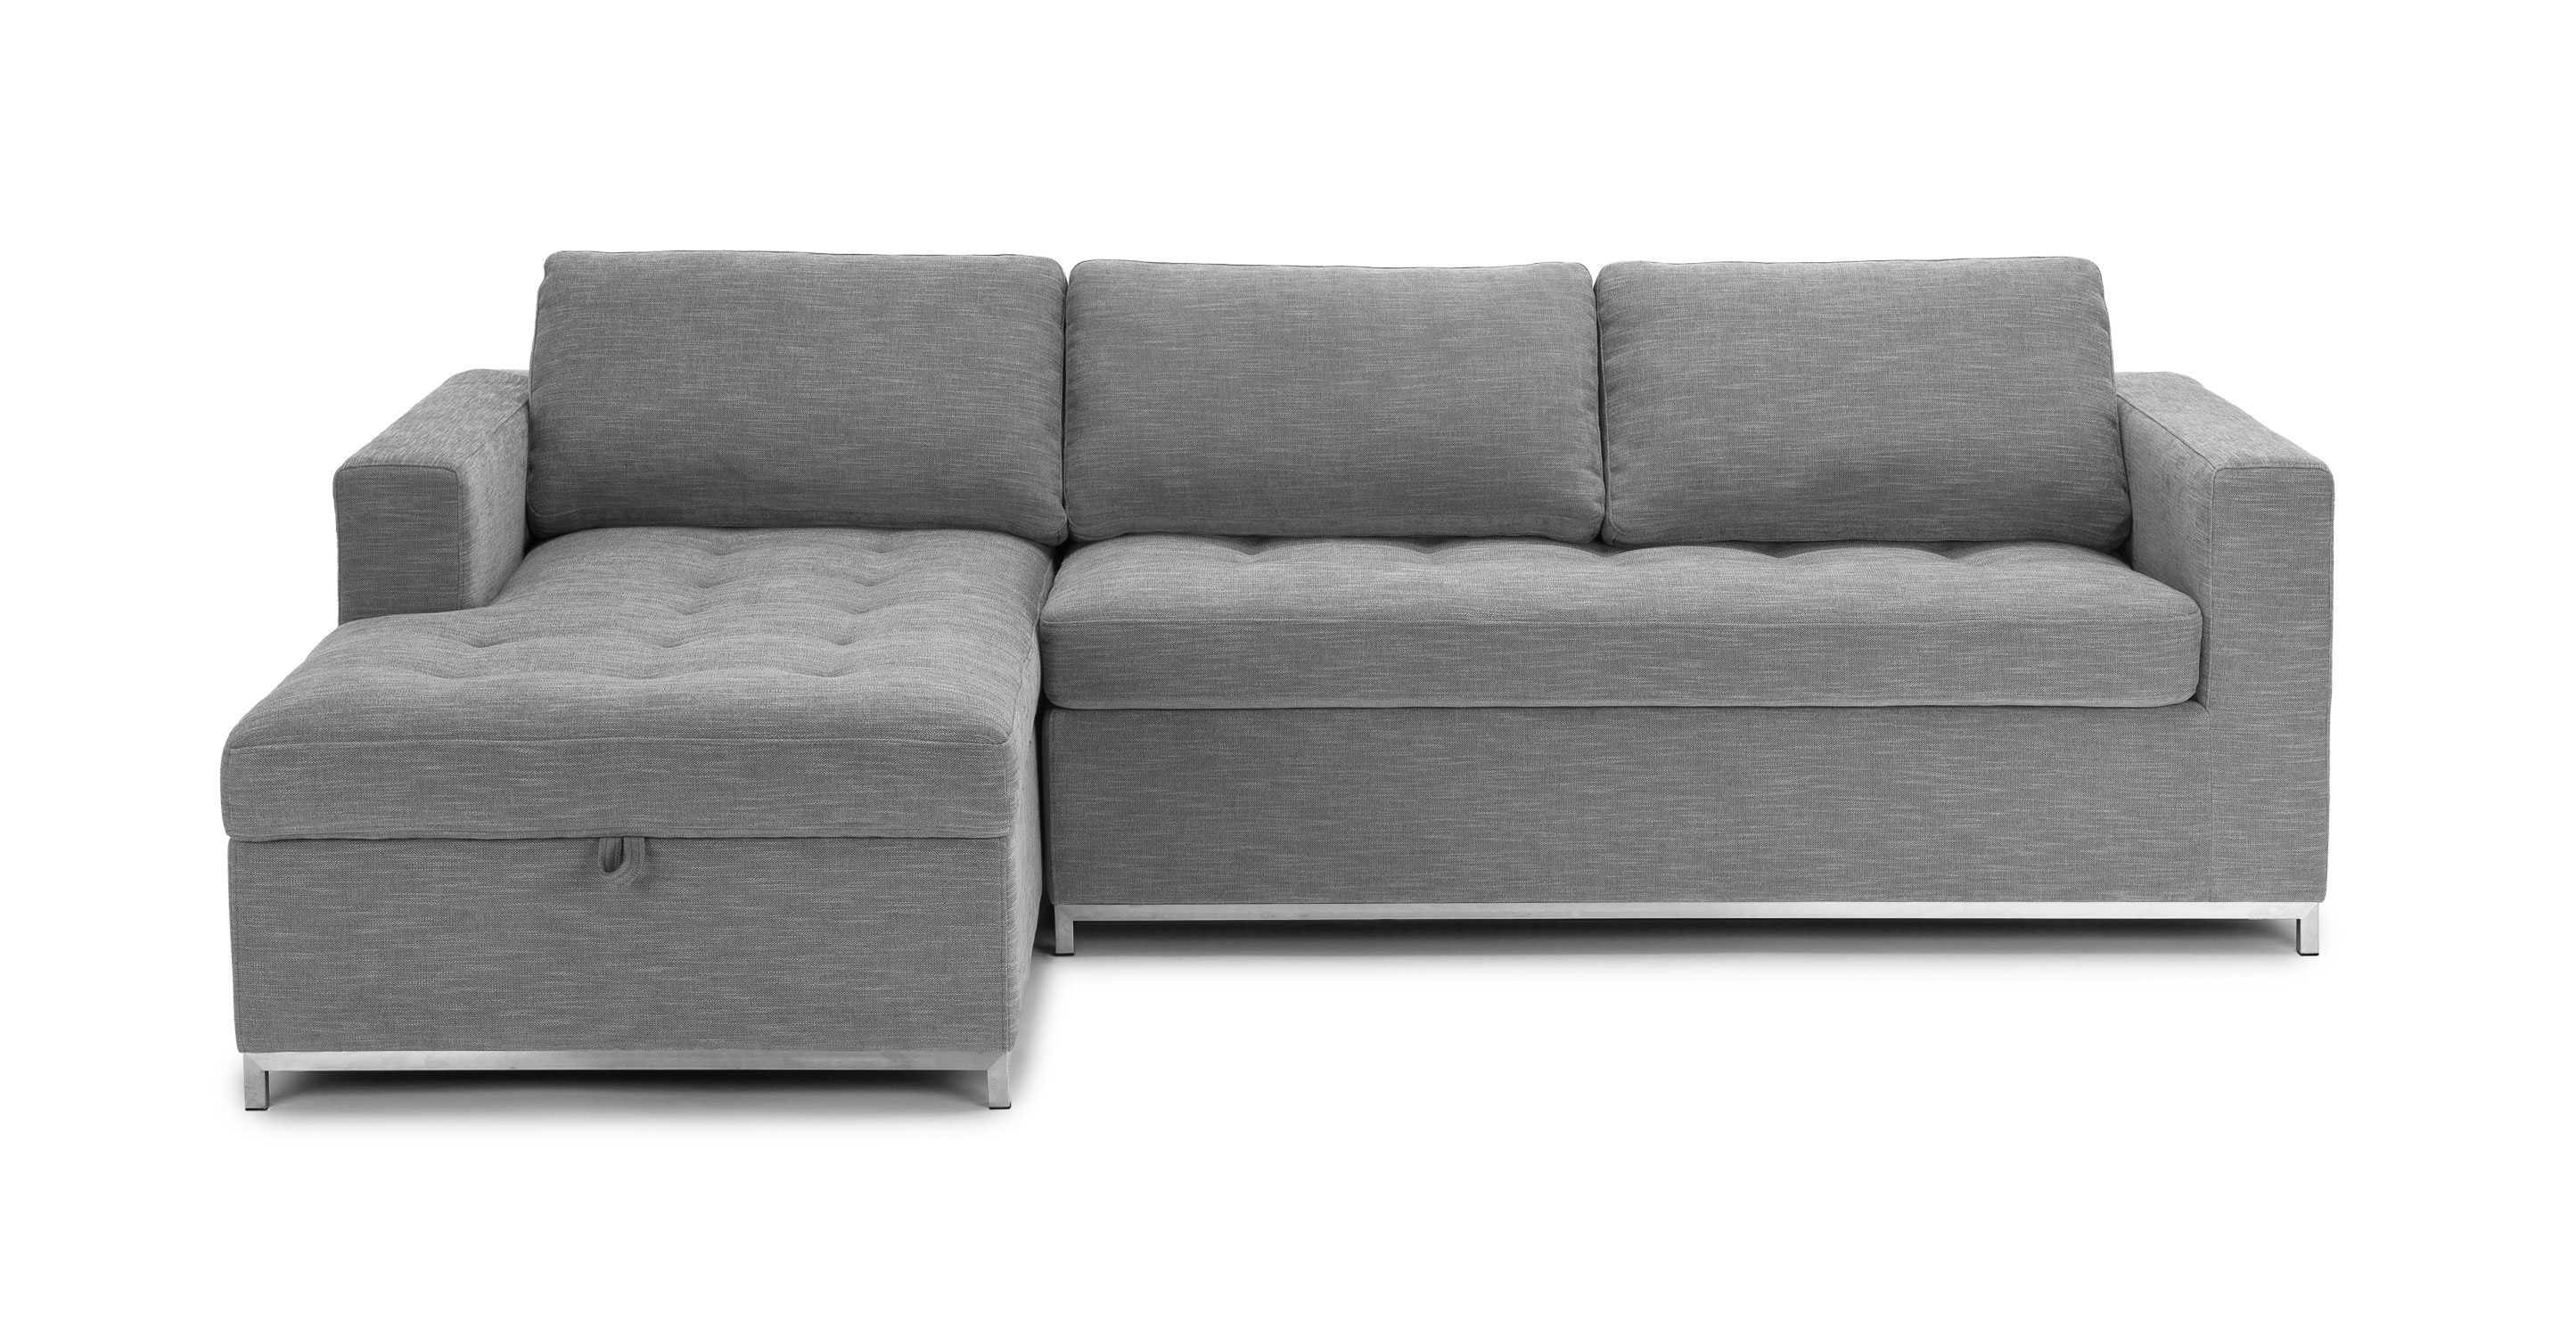 Gray Sofa Bed Left Sectional Metal Legs Article Soma